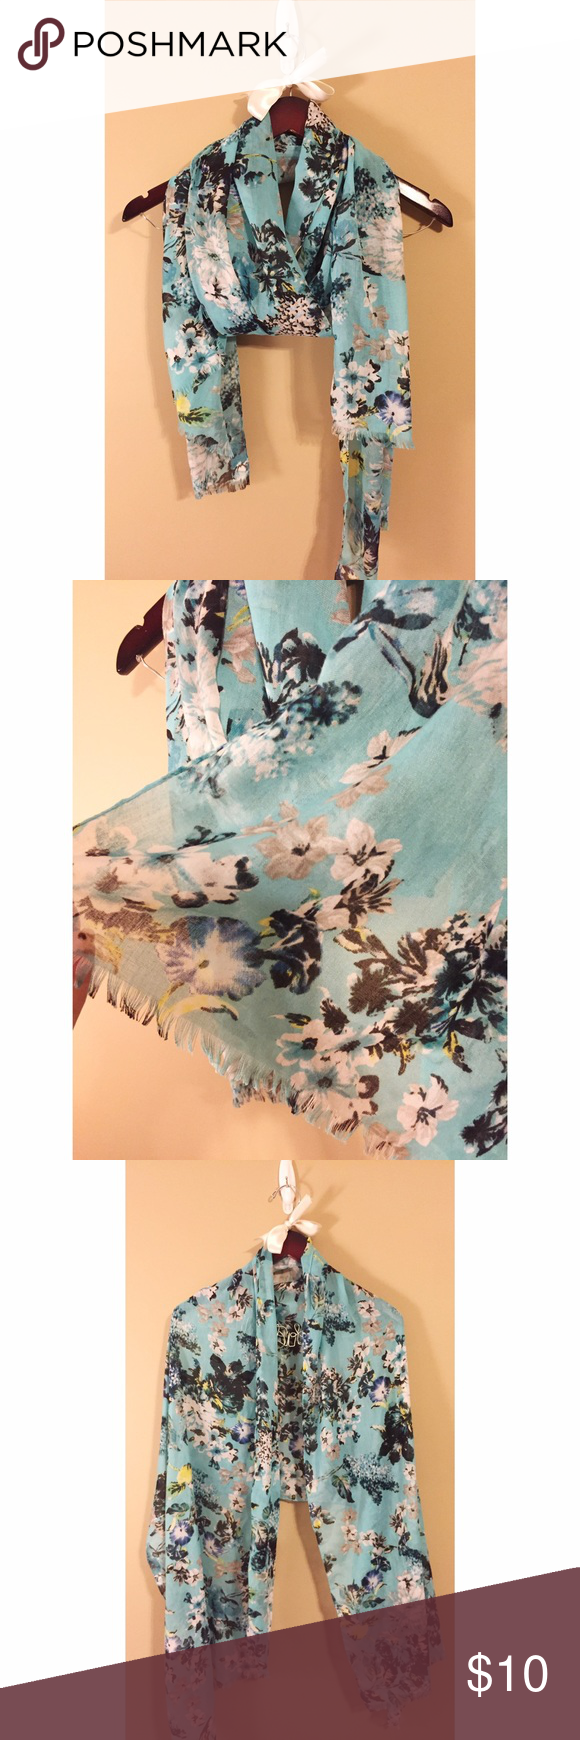 🆕Turquoise floral scarf/wrap Turquoise floral light weight scarf. Material is like a soft, linen material. Fringe on the ends, manufactured that way. Only wore once. Selling to downsize my scarf collection. Can be worn as a wrap too! Merona Accessories Scarves & Wraps